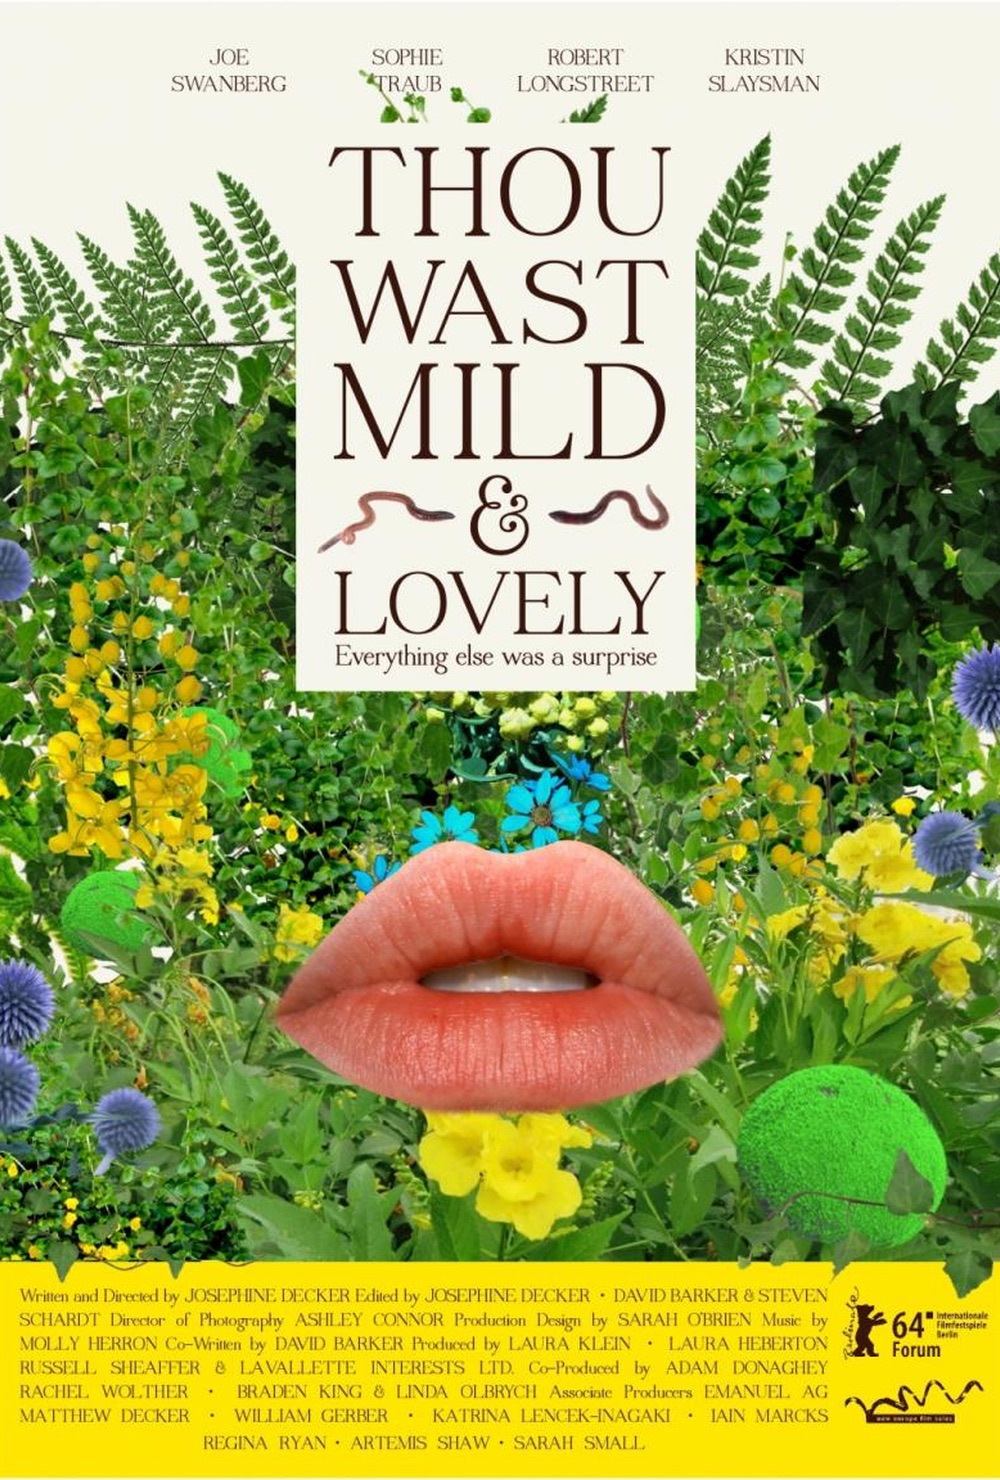 thou-wast-mild-and-lovely-2014-josephine-decker-poster.jpg